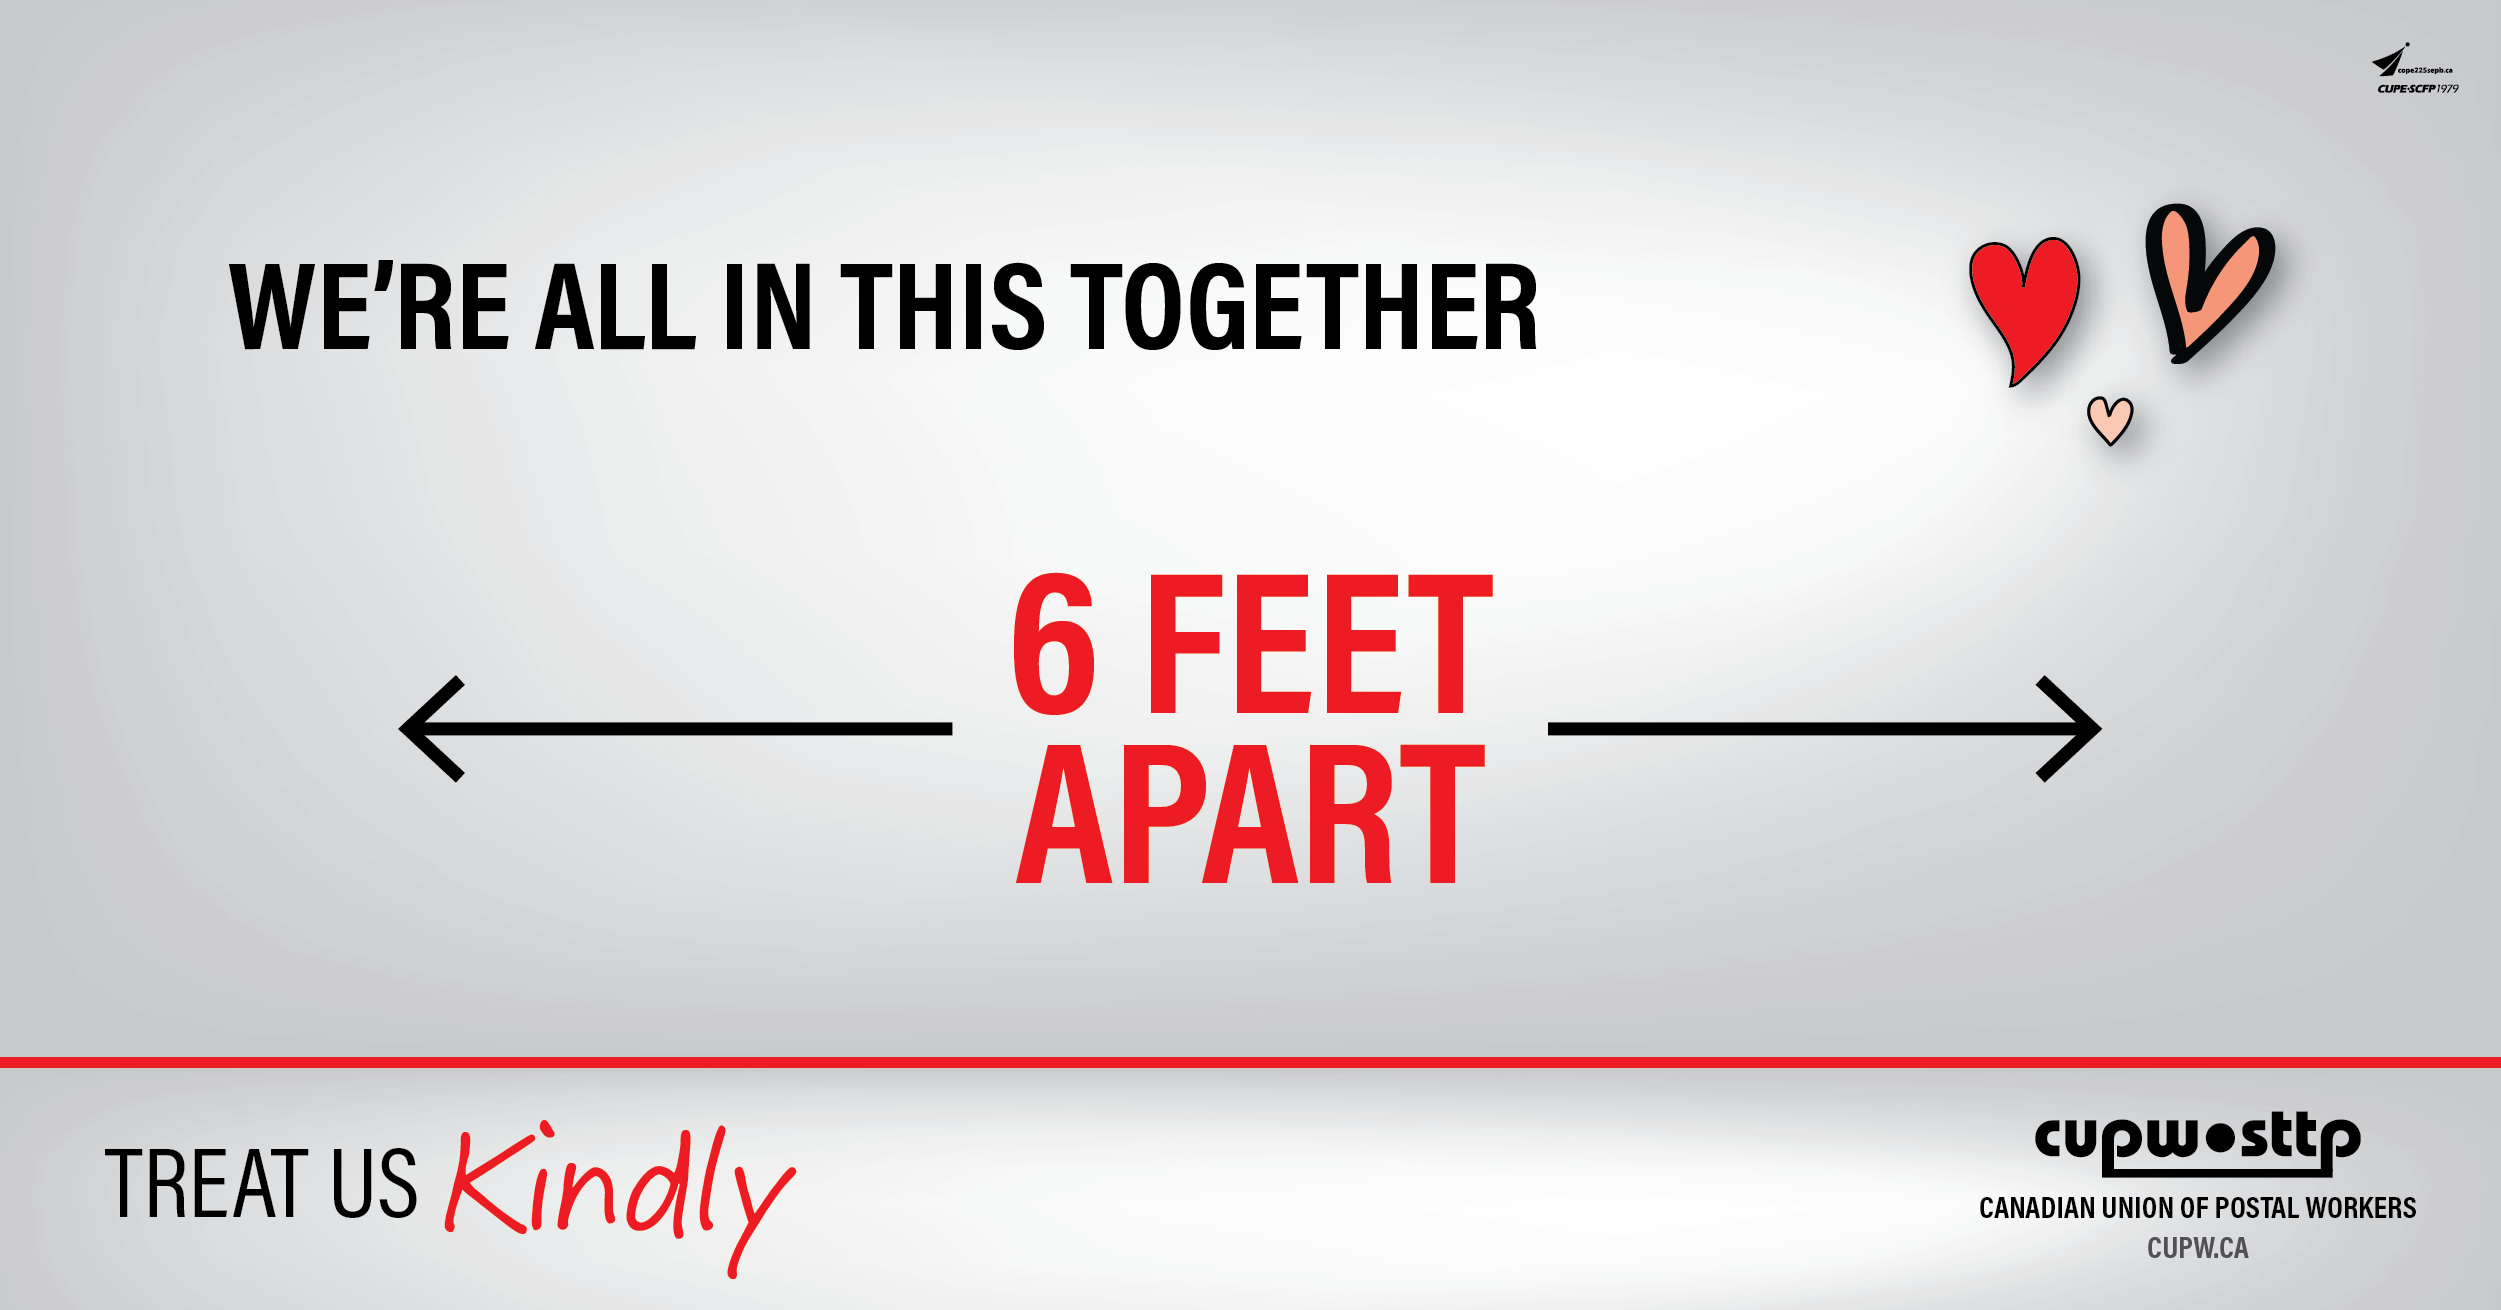 We're all in this together - 6 feet apart